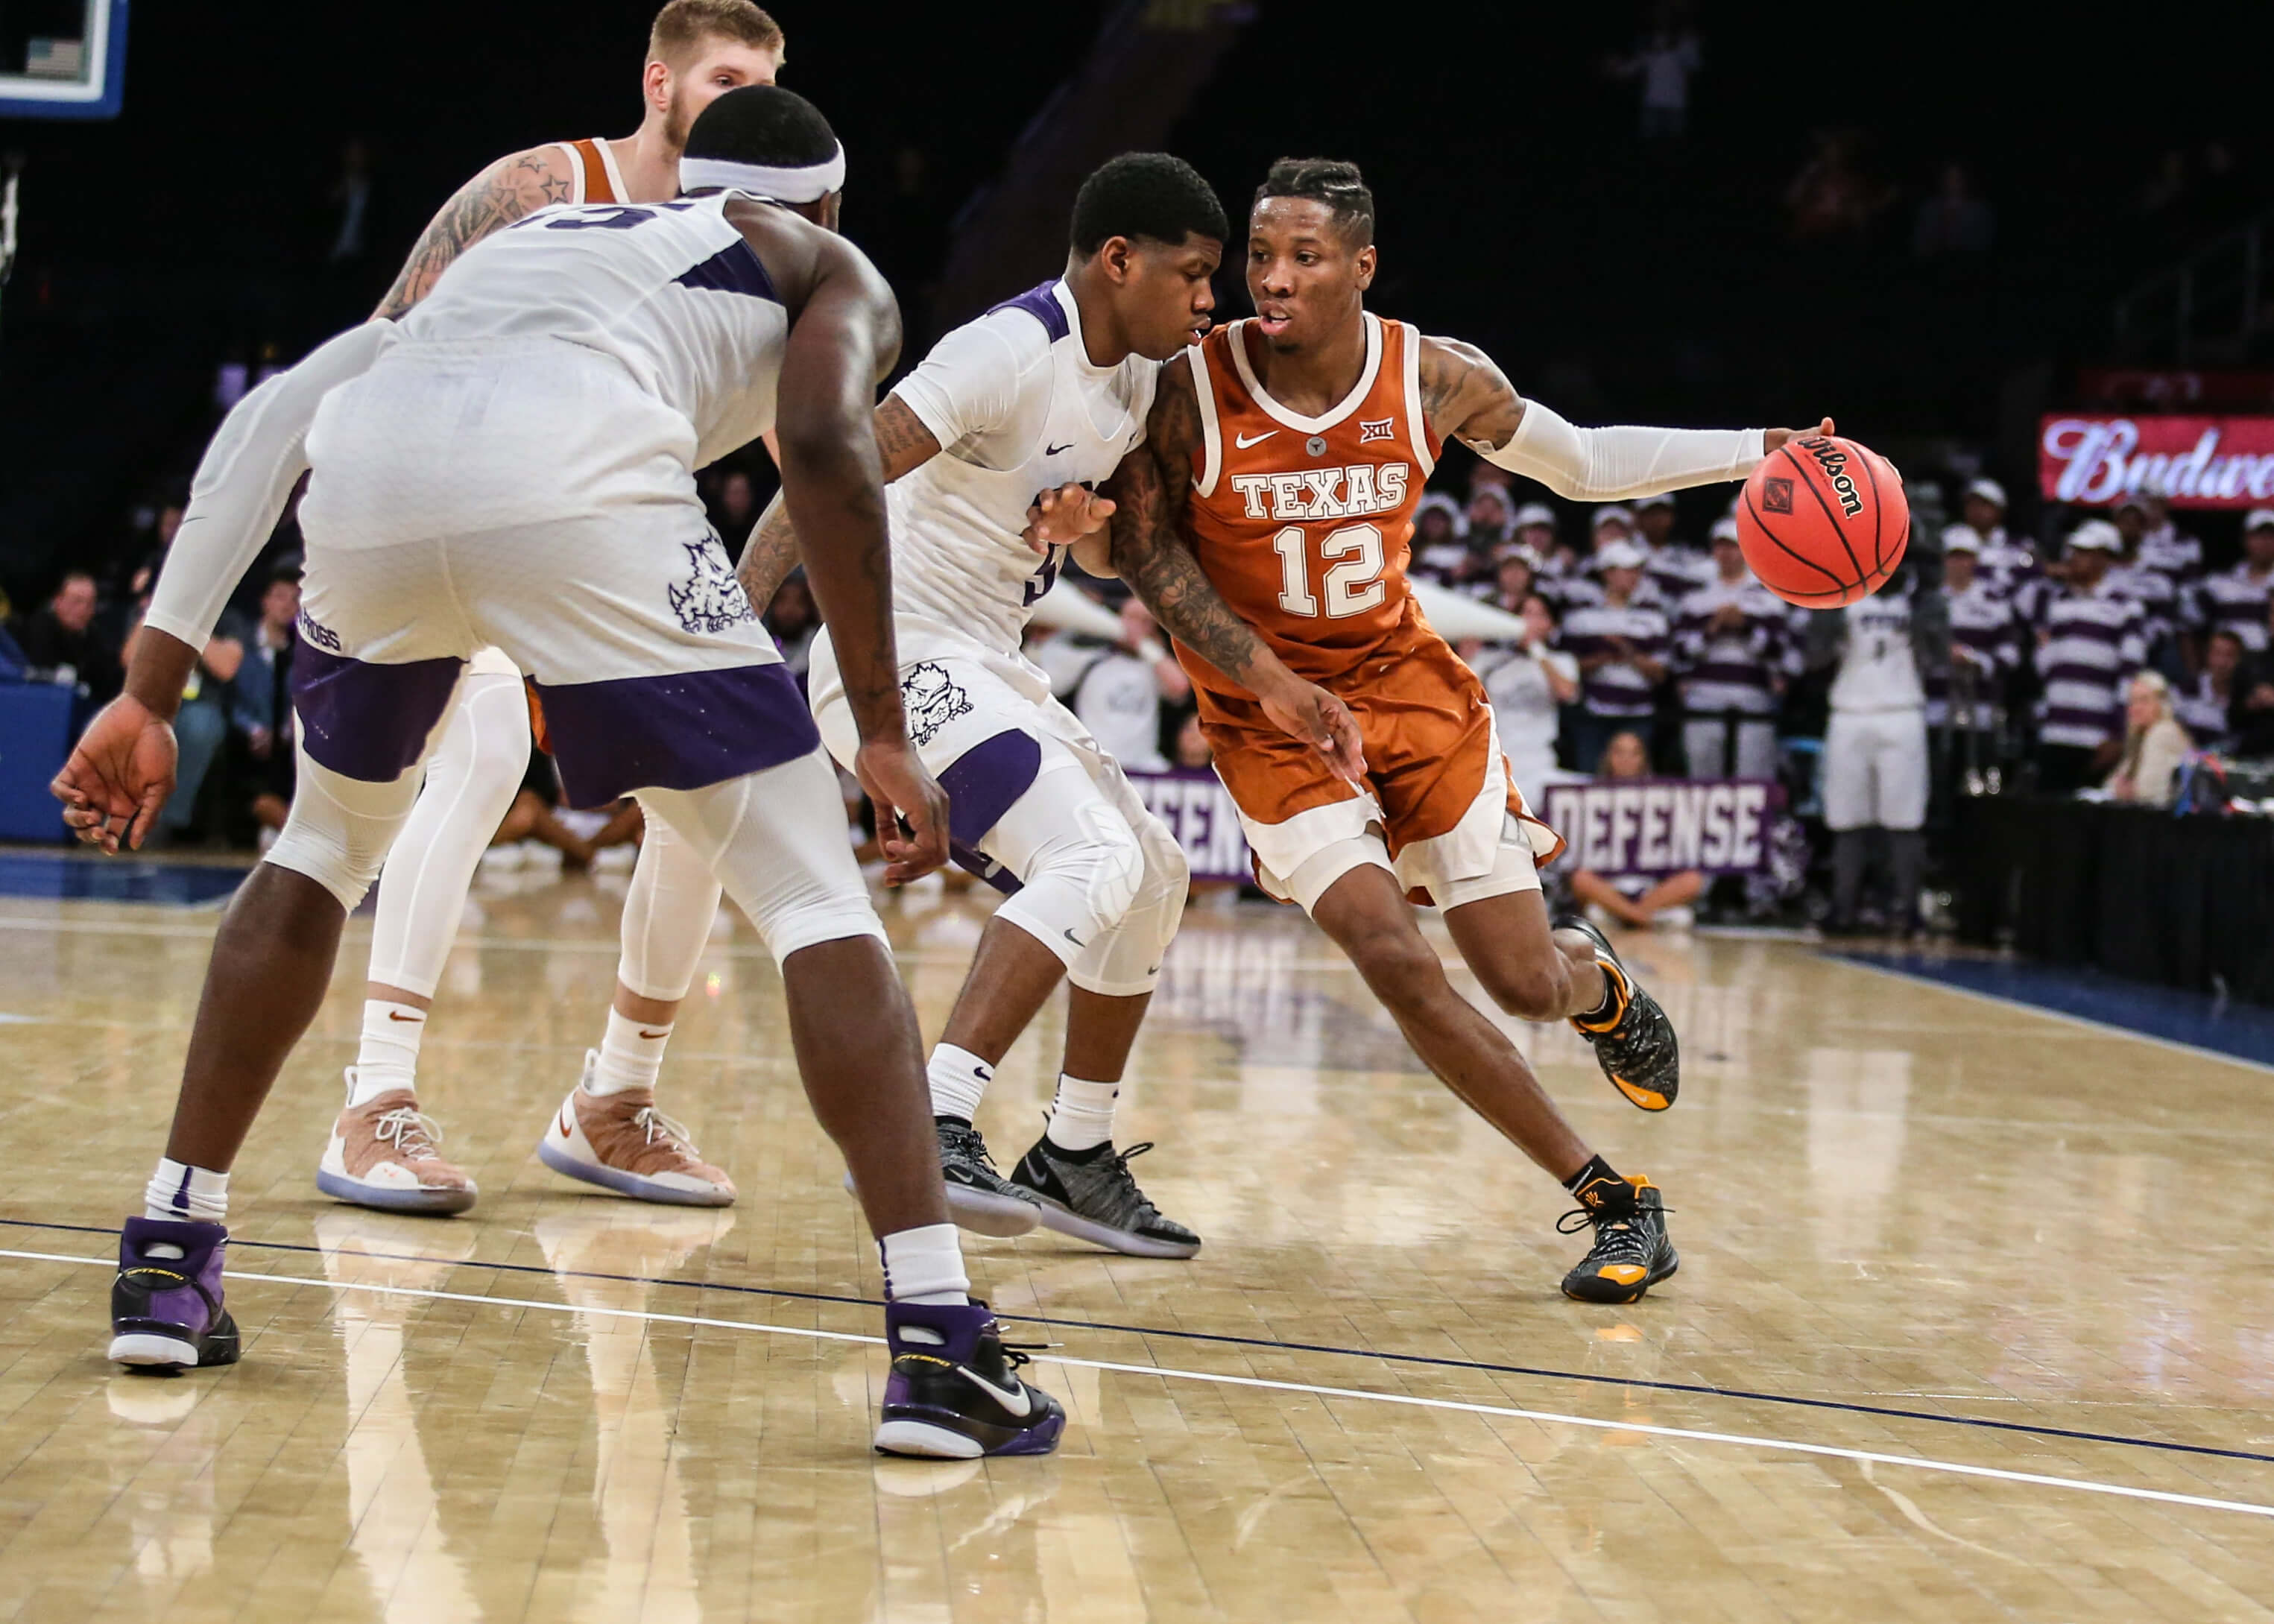 In-Play Wagering Tips for March Madness Games